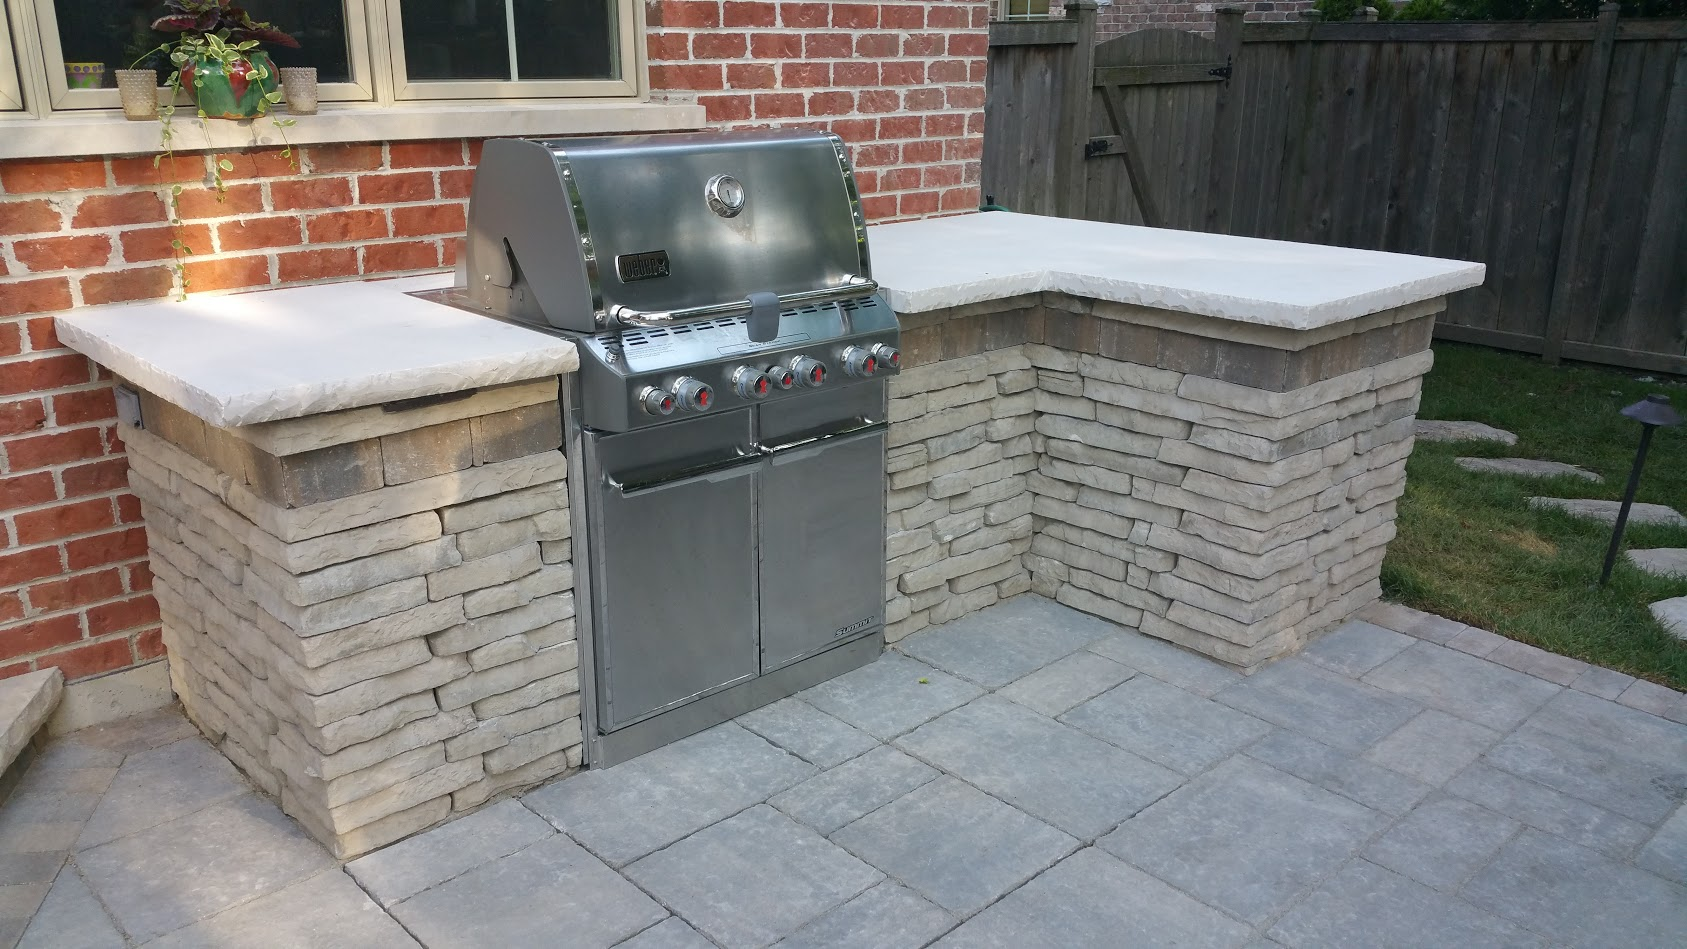 Landscaping companies in Glenview, IL with top patio pavers, outdoor kitchen and landscape design